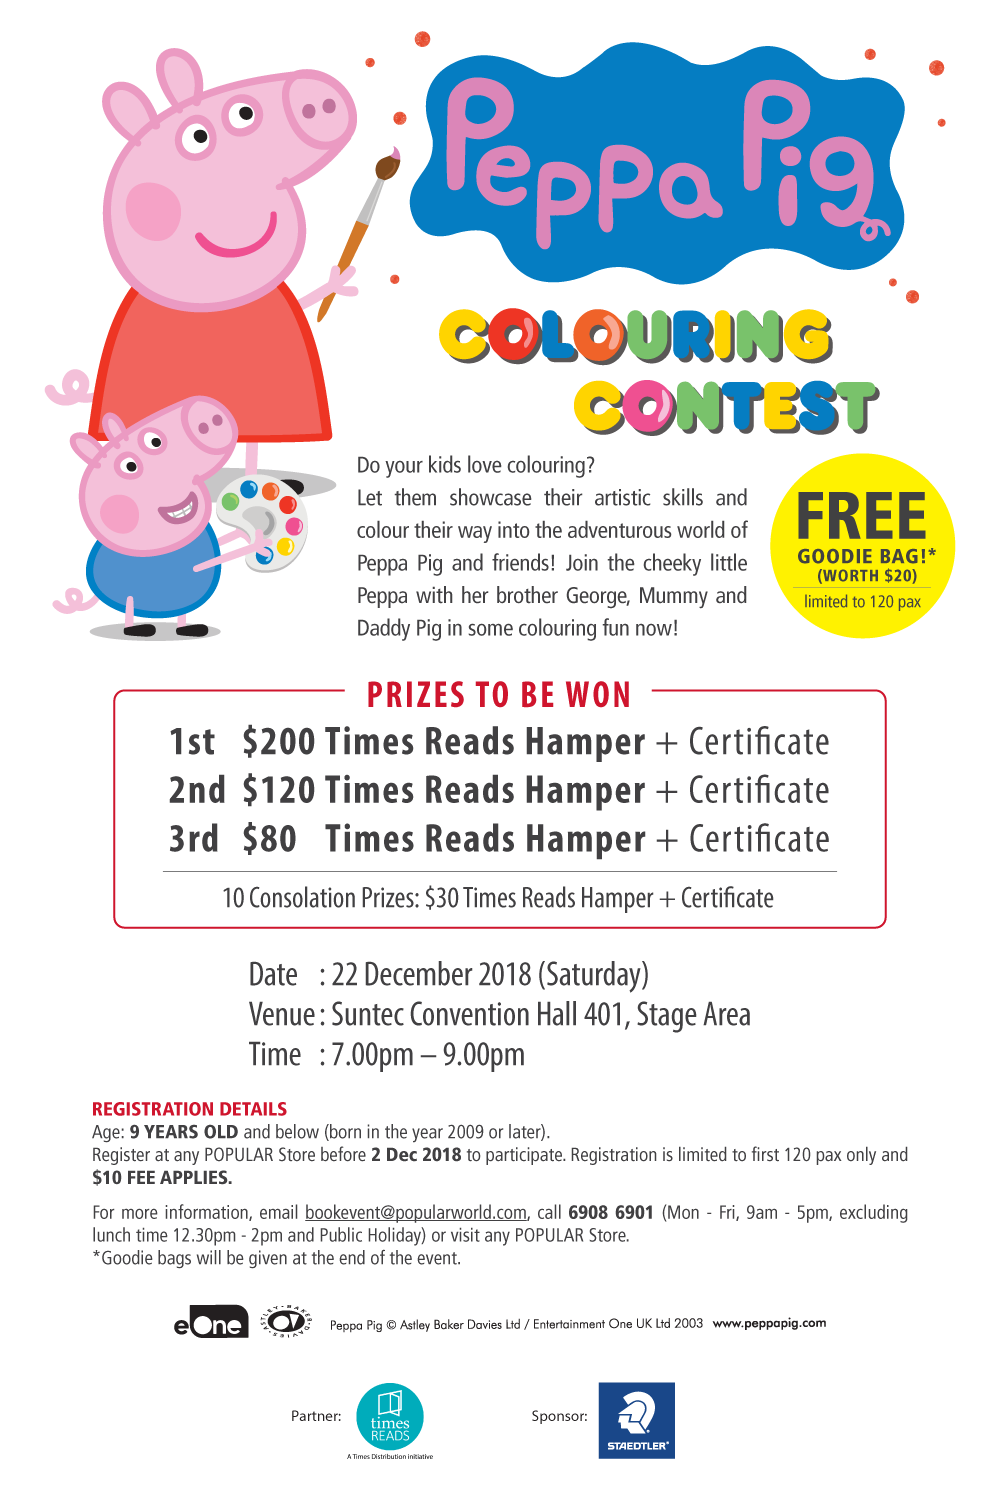 BookFest@Singapore 2018 :: Peppa Pig Colouring Contest